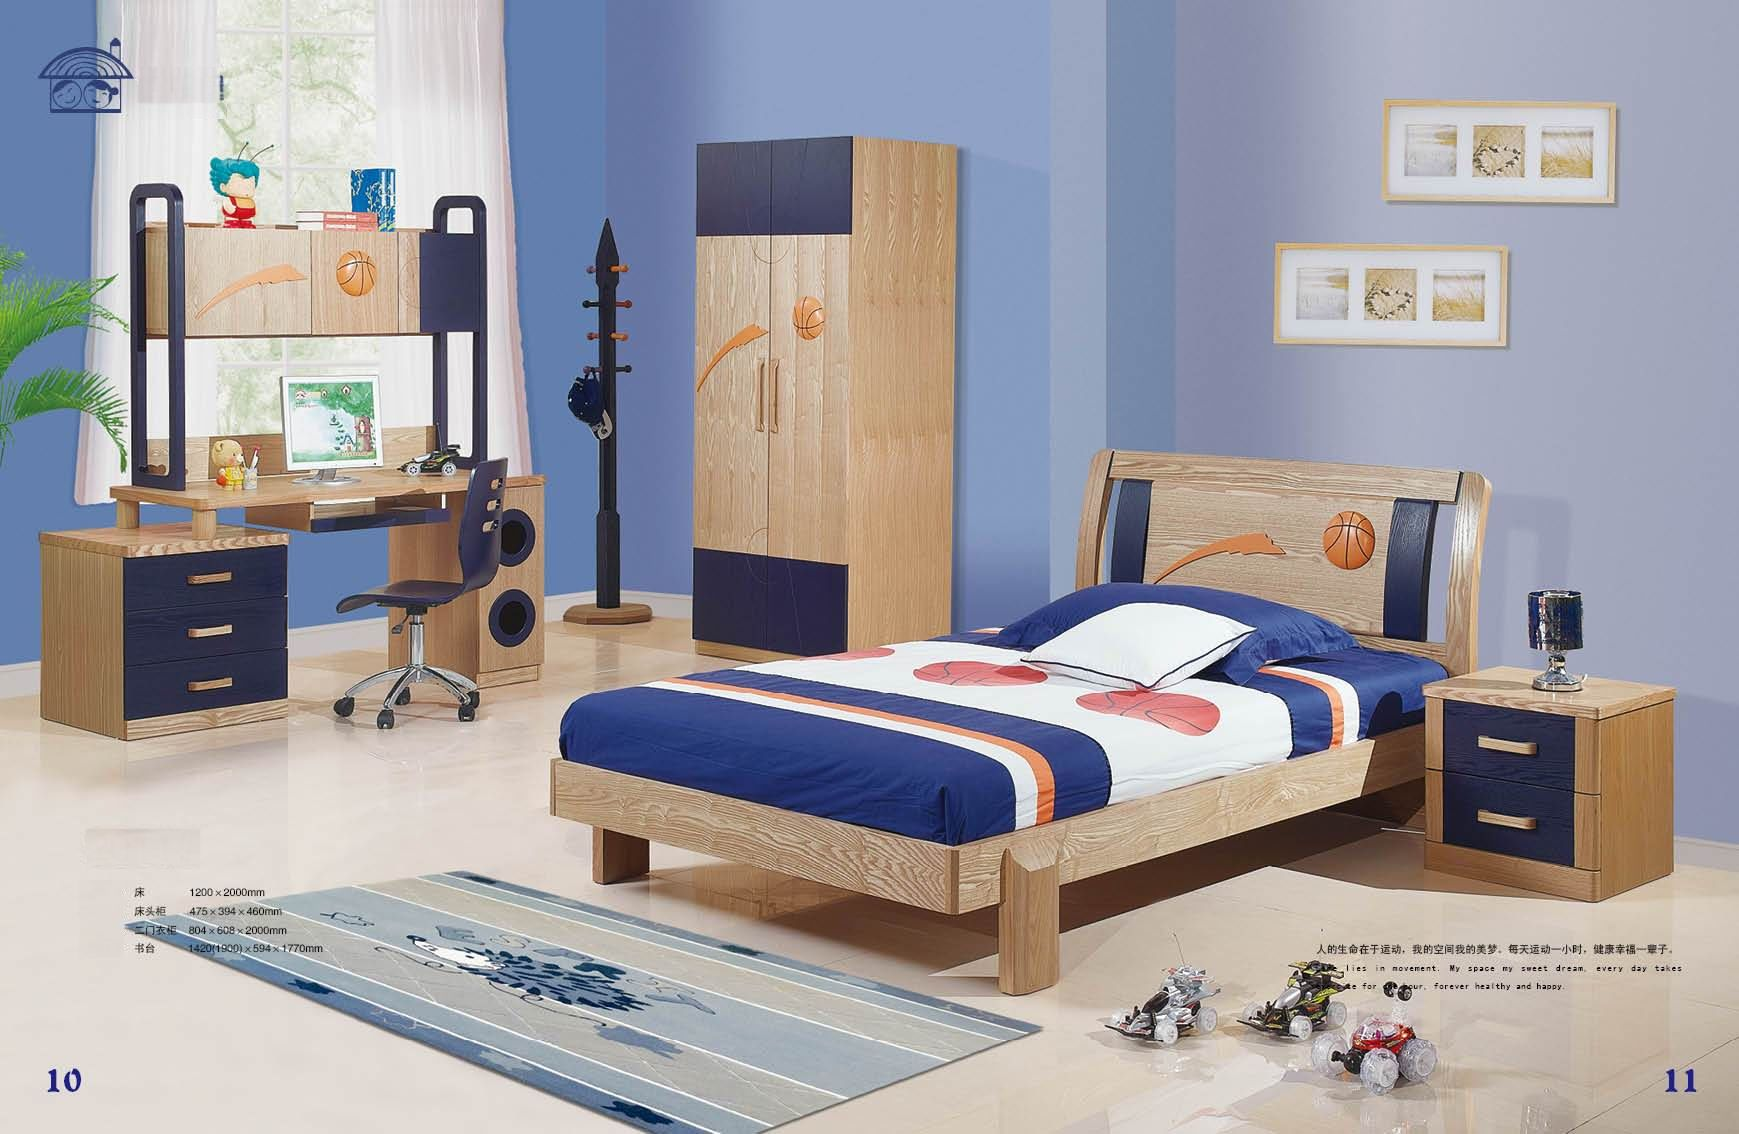 Youth Bedroom Furniture Kids Bedroom Set Jkd 20120 China Kids Bedroom Kids Furniture